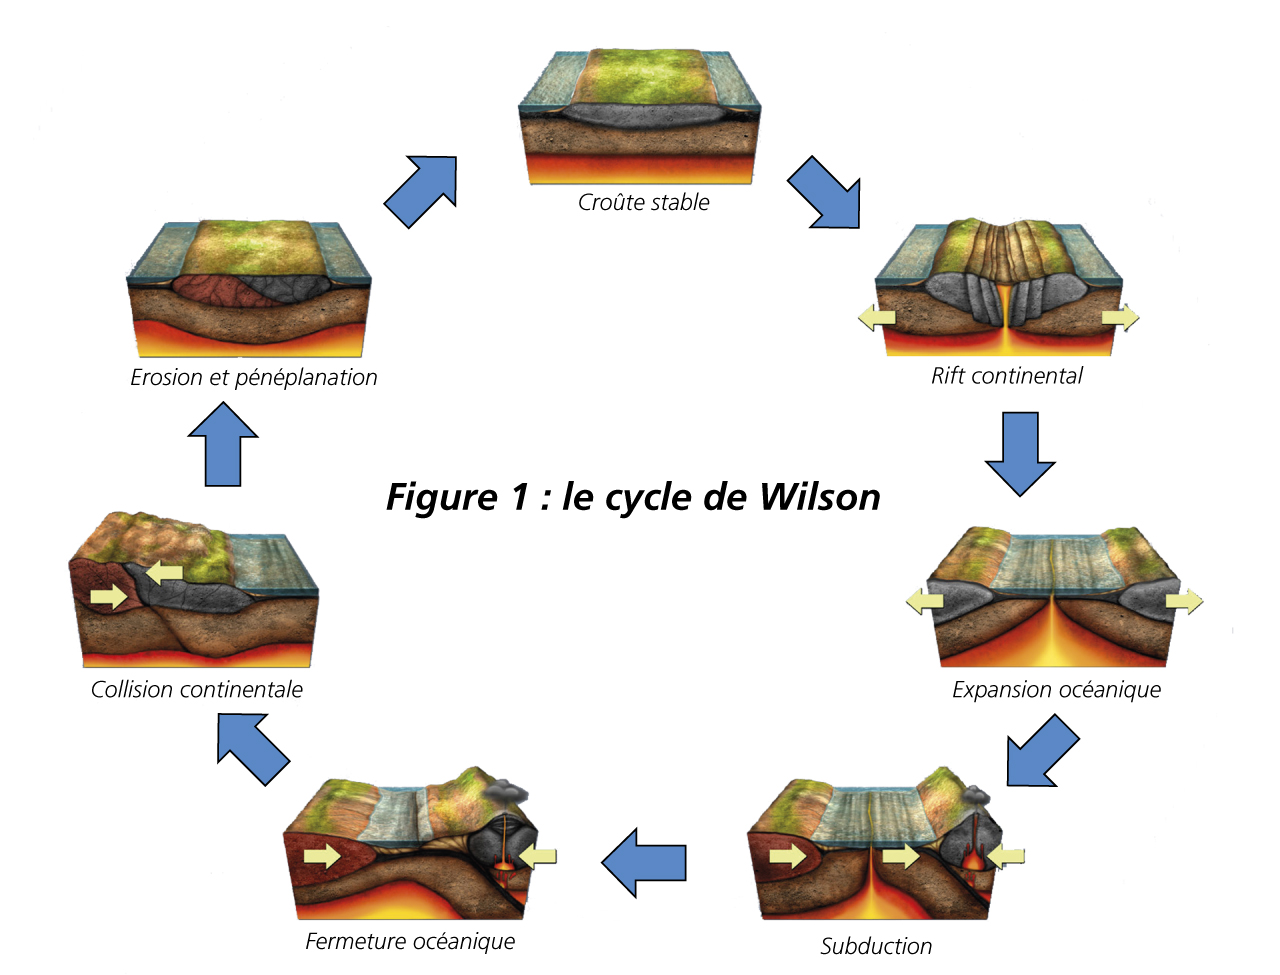 Figure 1: Wilson cycle Stable crust / Continental rift / Oceanic expansion / Subduction / Oceanic closure / Continental collision / Erosion and peneplanation